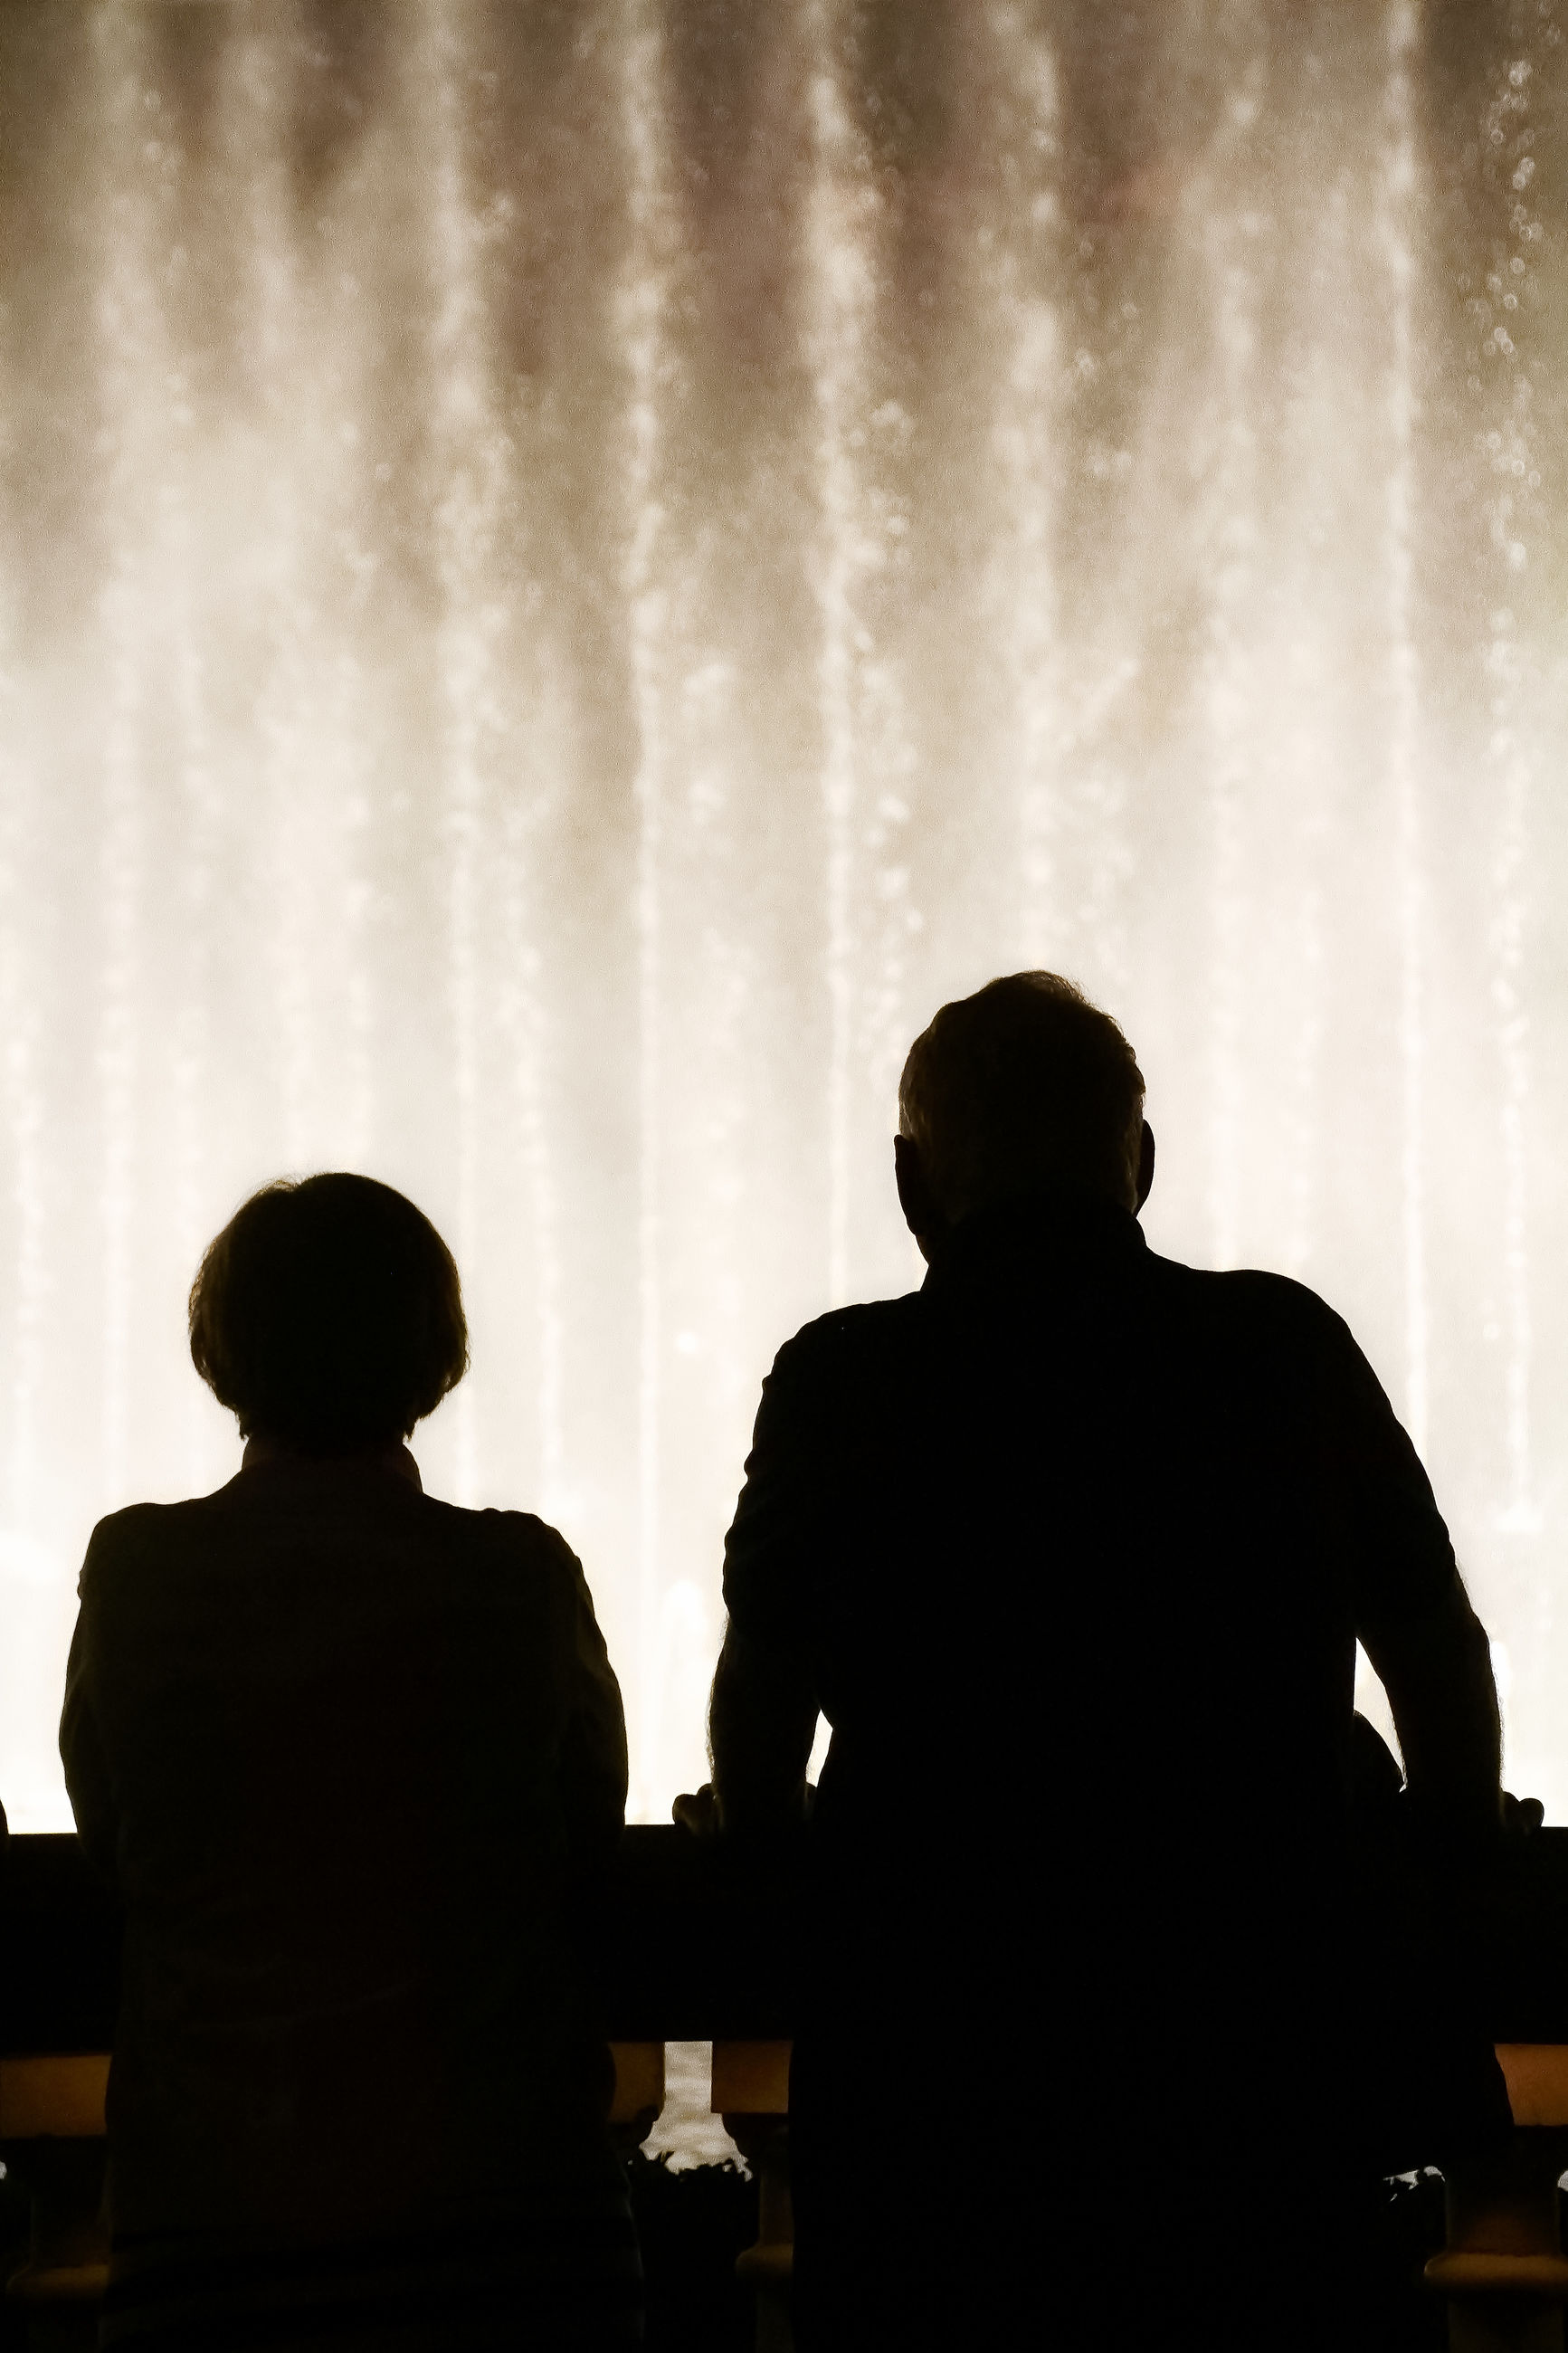 REAR VIEW OF SILHOUETTE MAN AND WOMAN STANDING IN ROOM